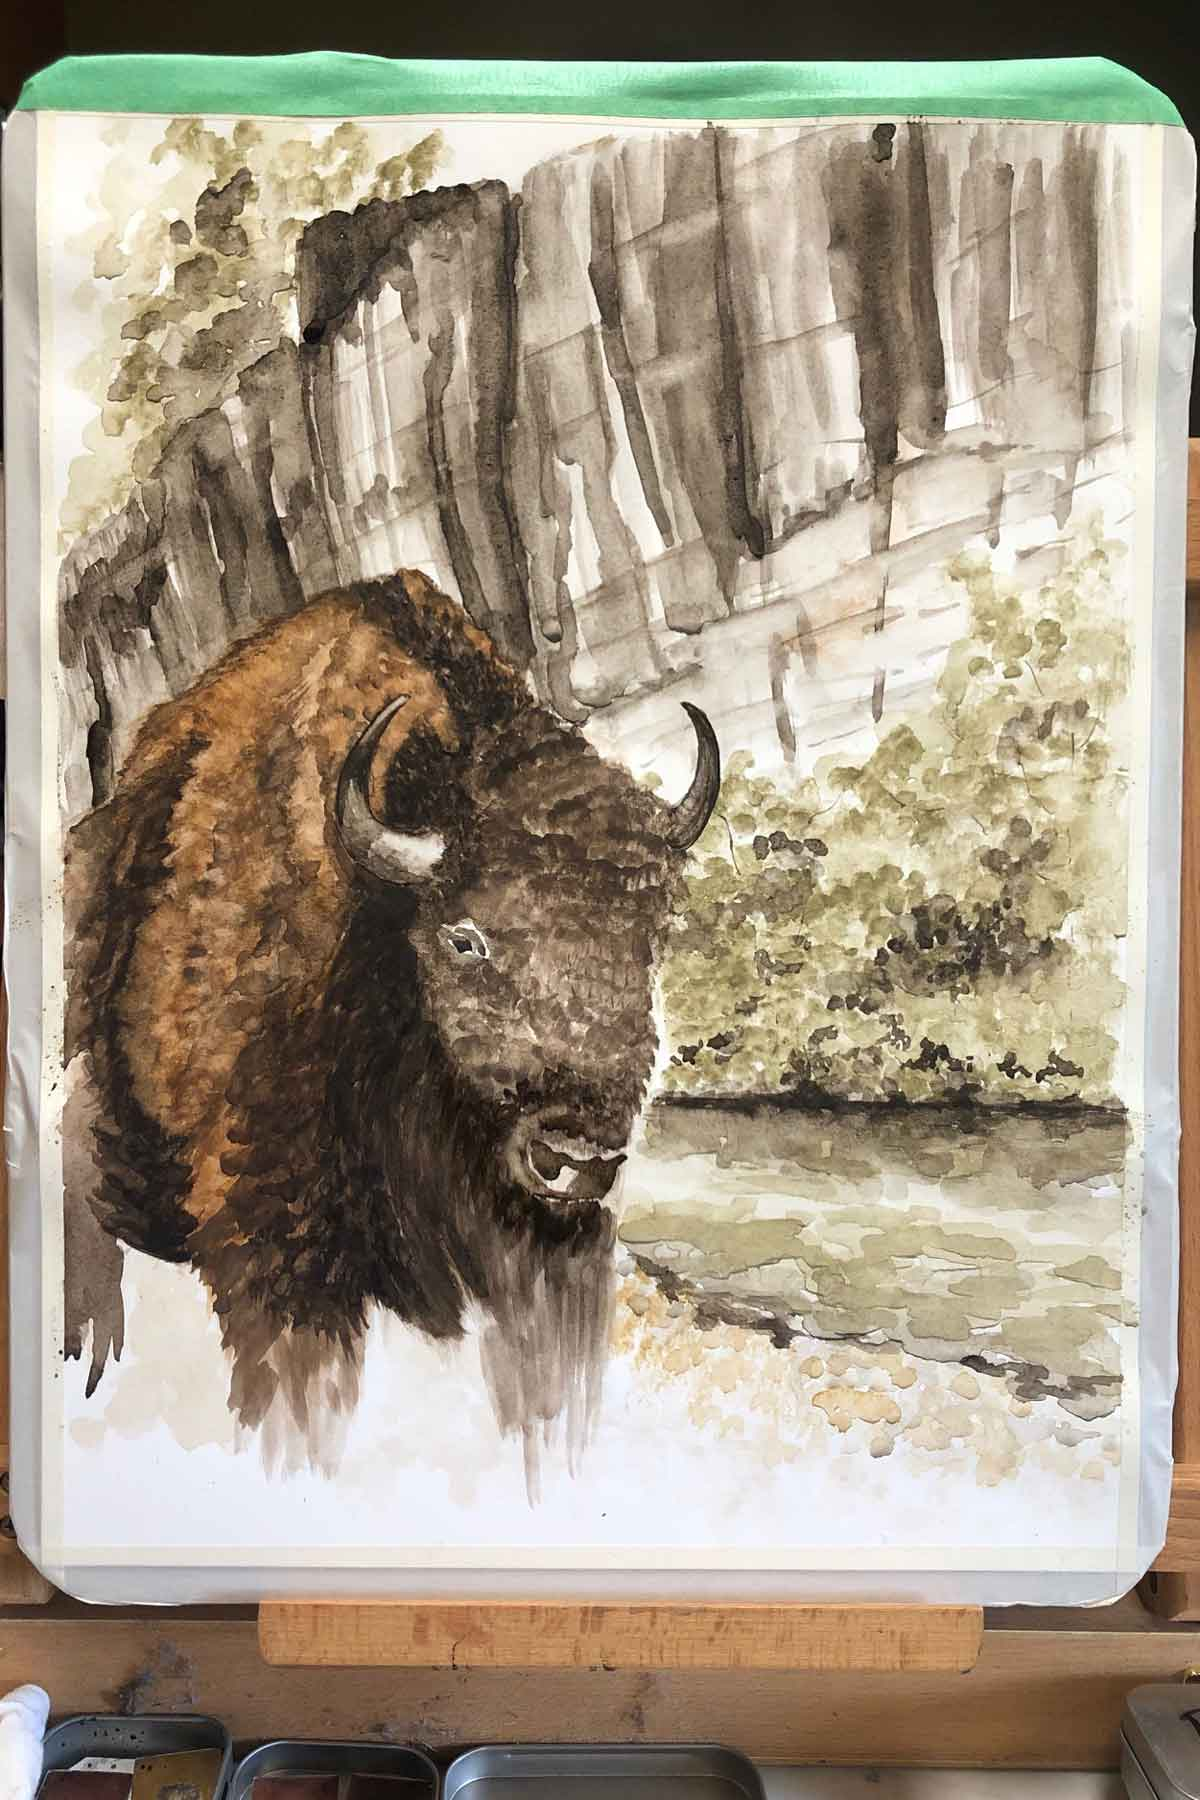 Namesake of the Buffalo National River, getting closer to finished.